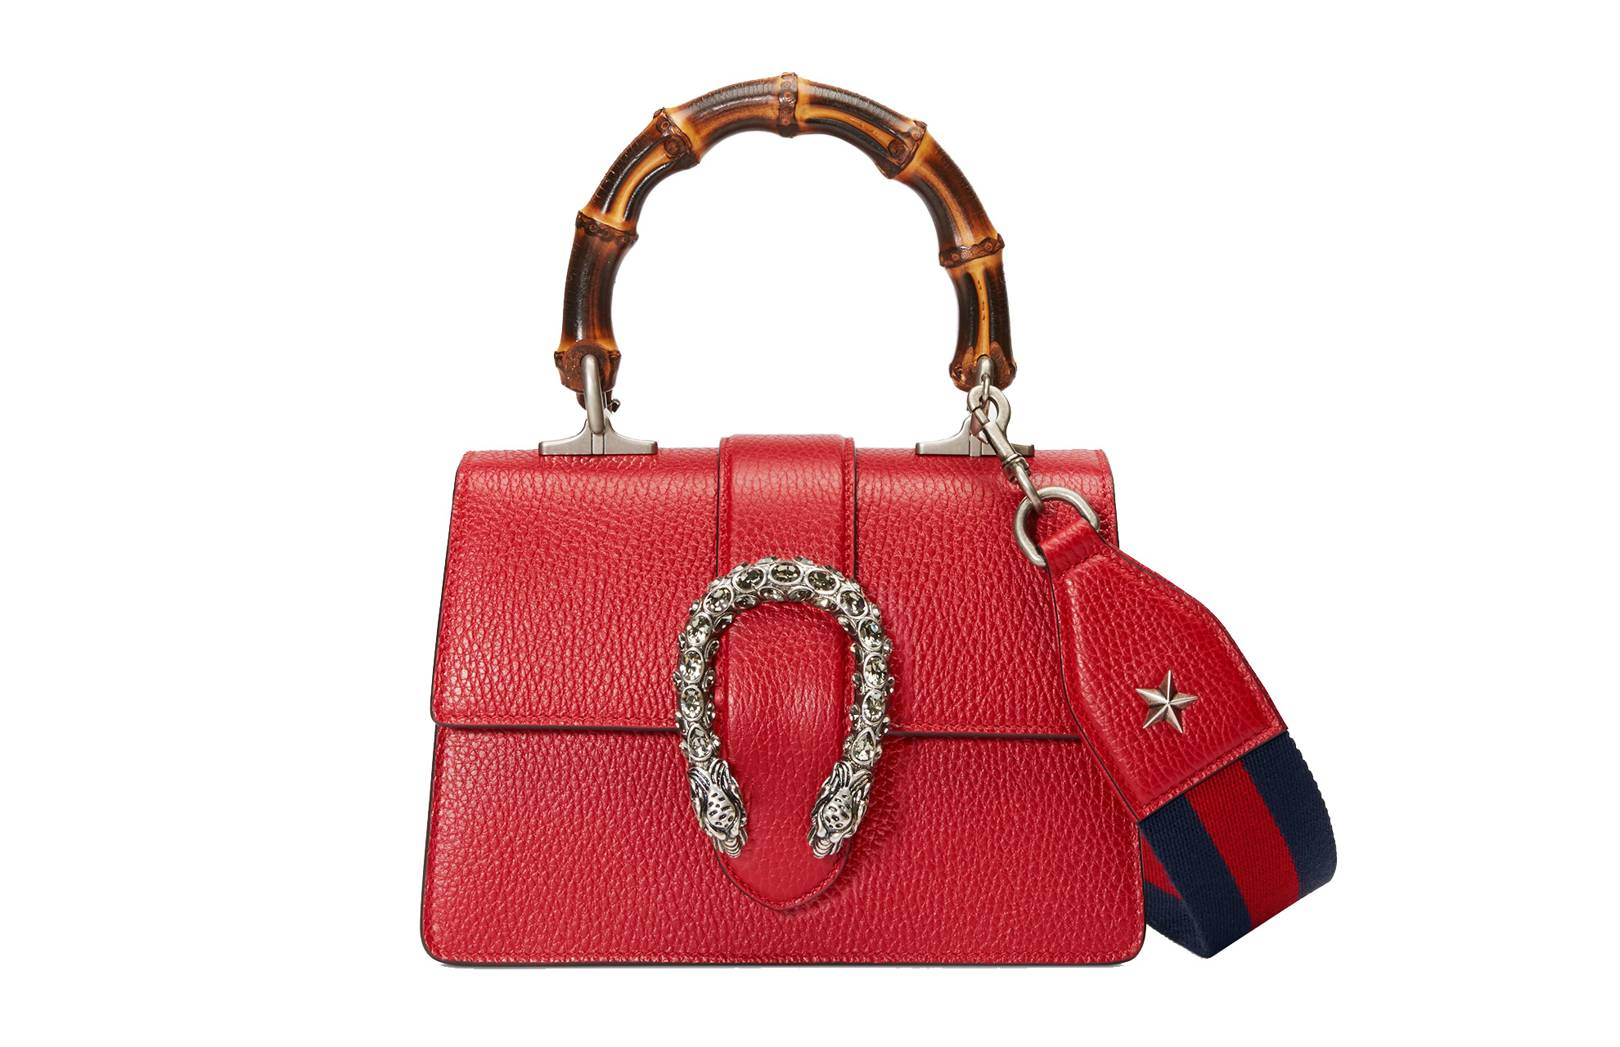 984444c56ecb The Best Red Handbags To Wear Now | British Vogue